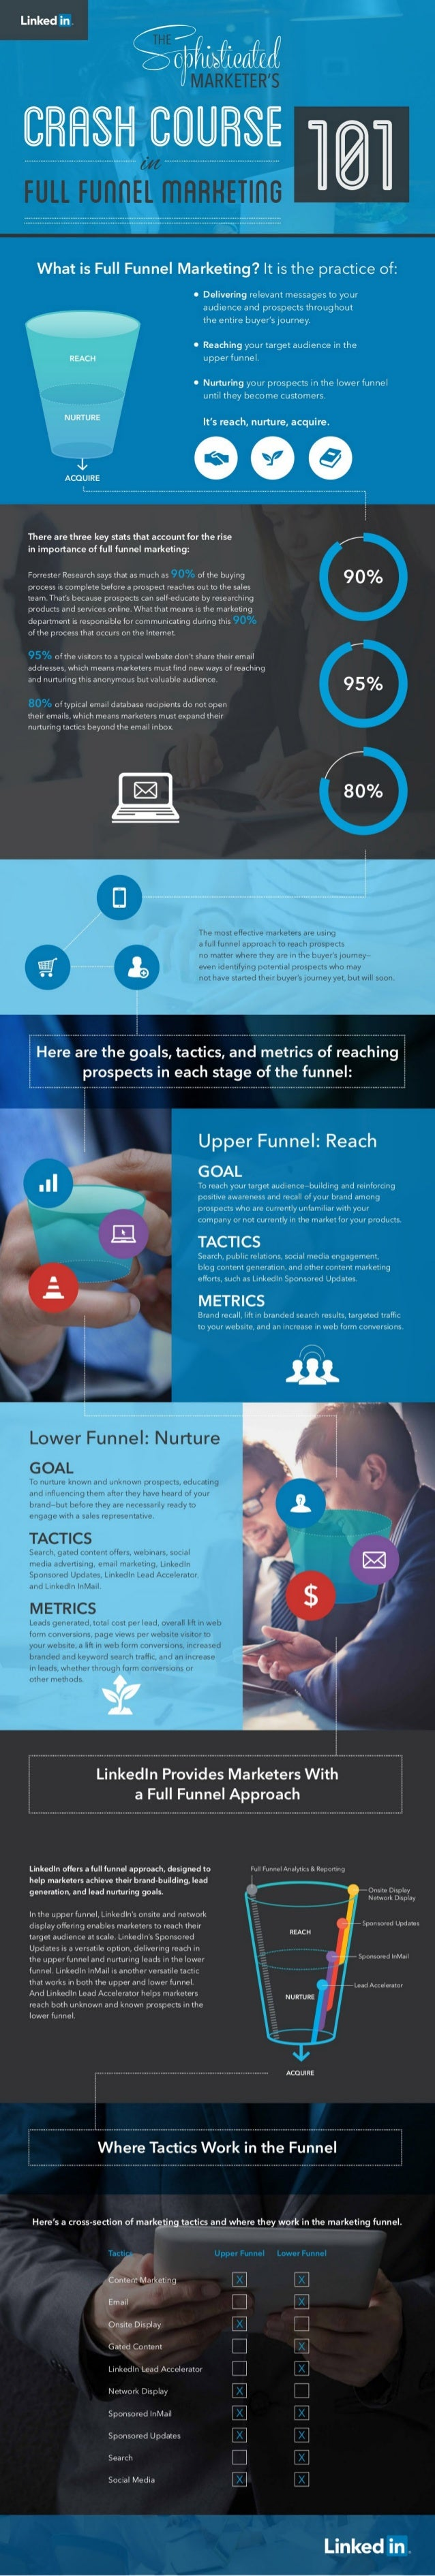 A sophisticated Marketer's Crash Course in Full Funnel Marketing - 101- INFOGRAPHIC